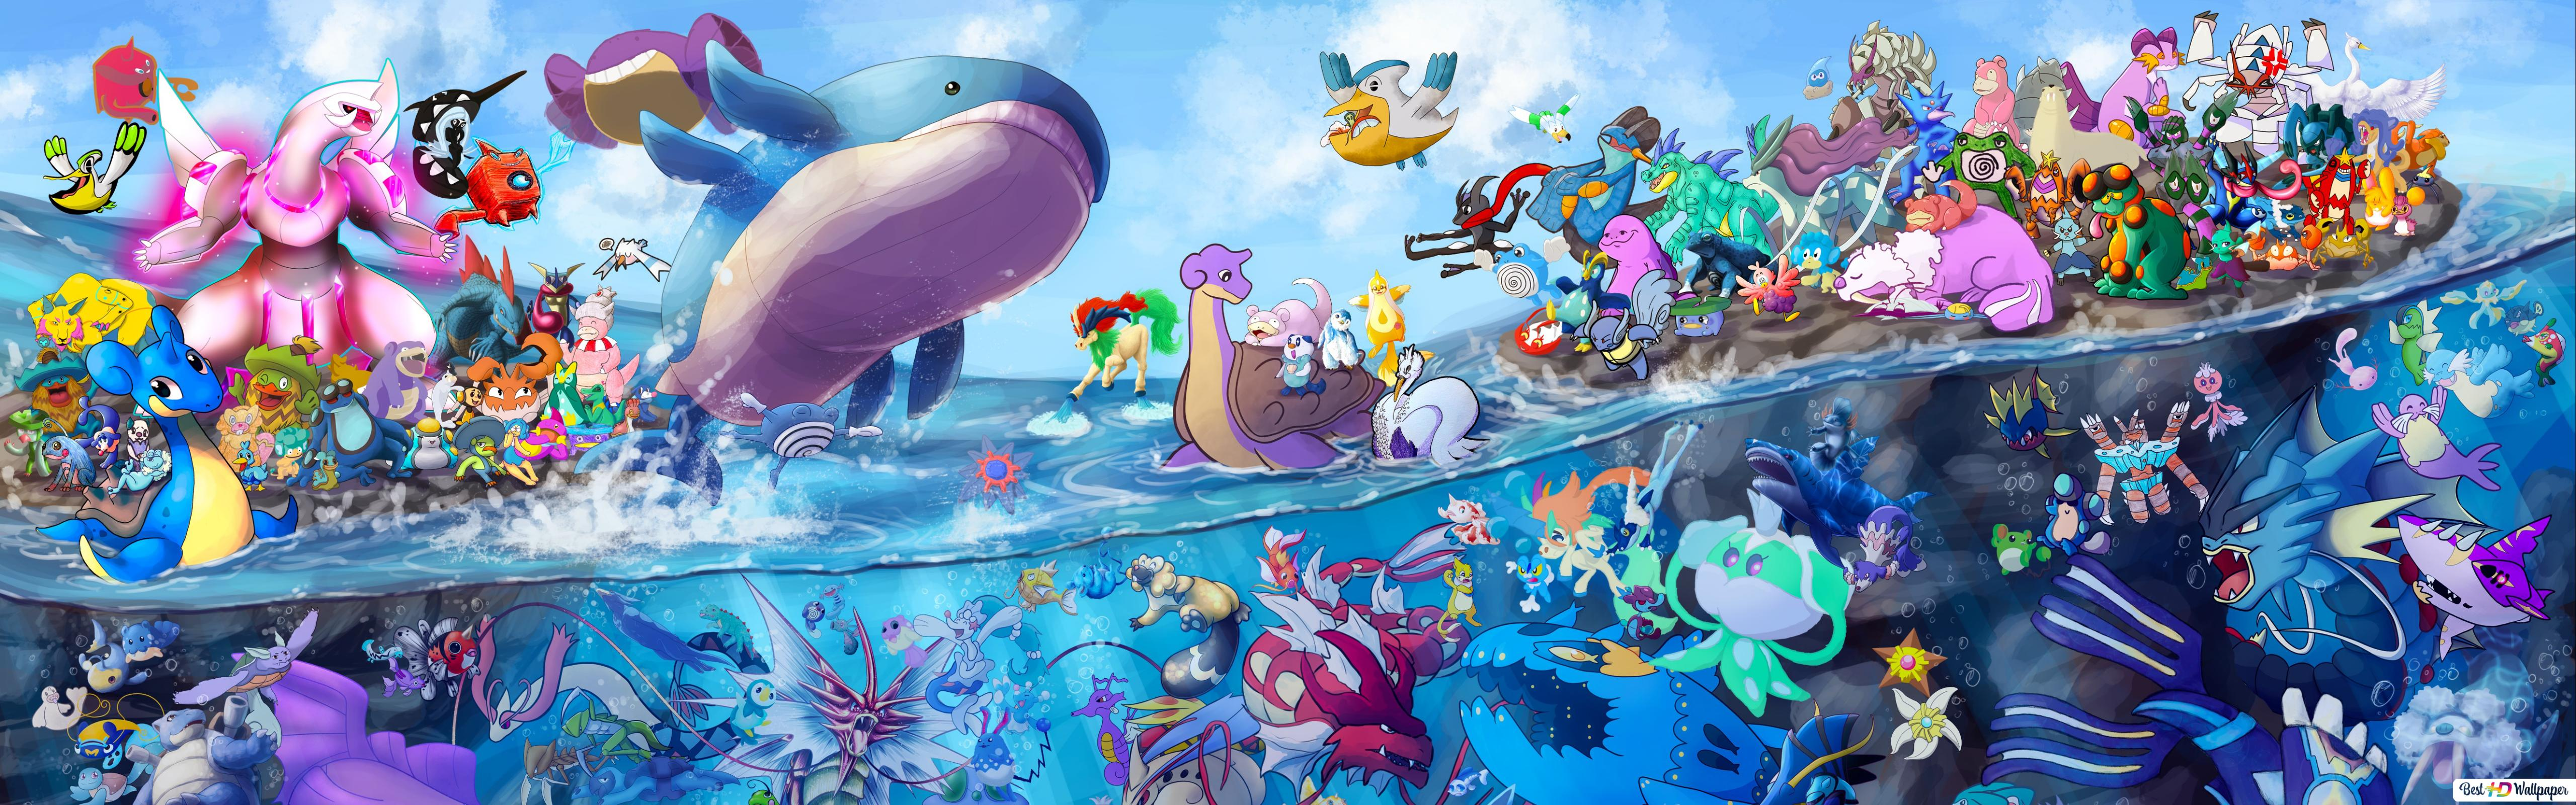 Pokemons All Around Hd Wallpaper Download